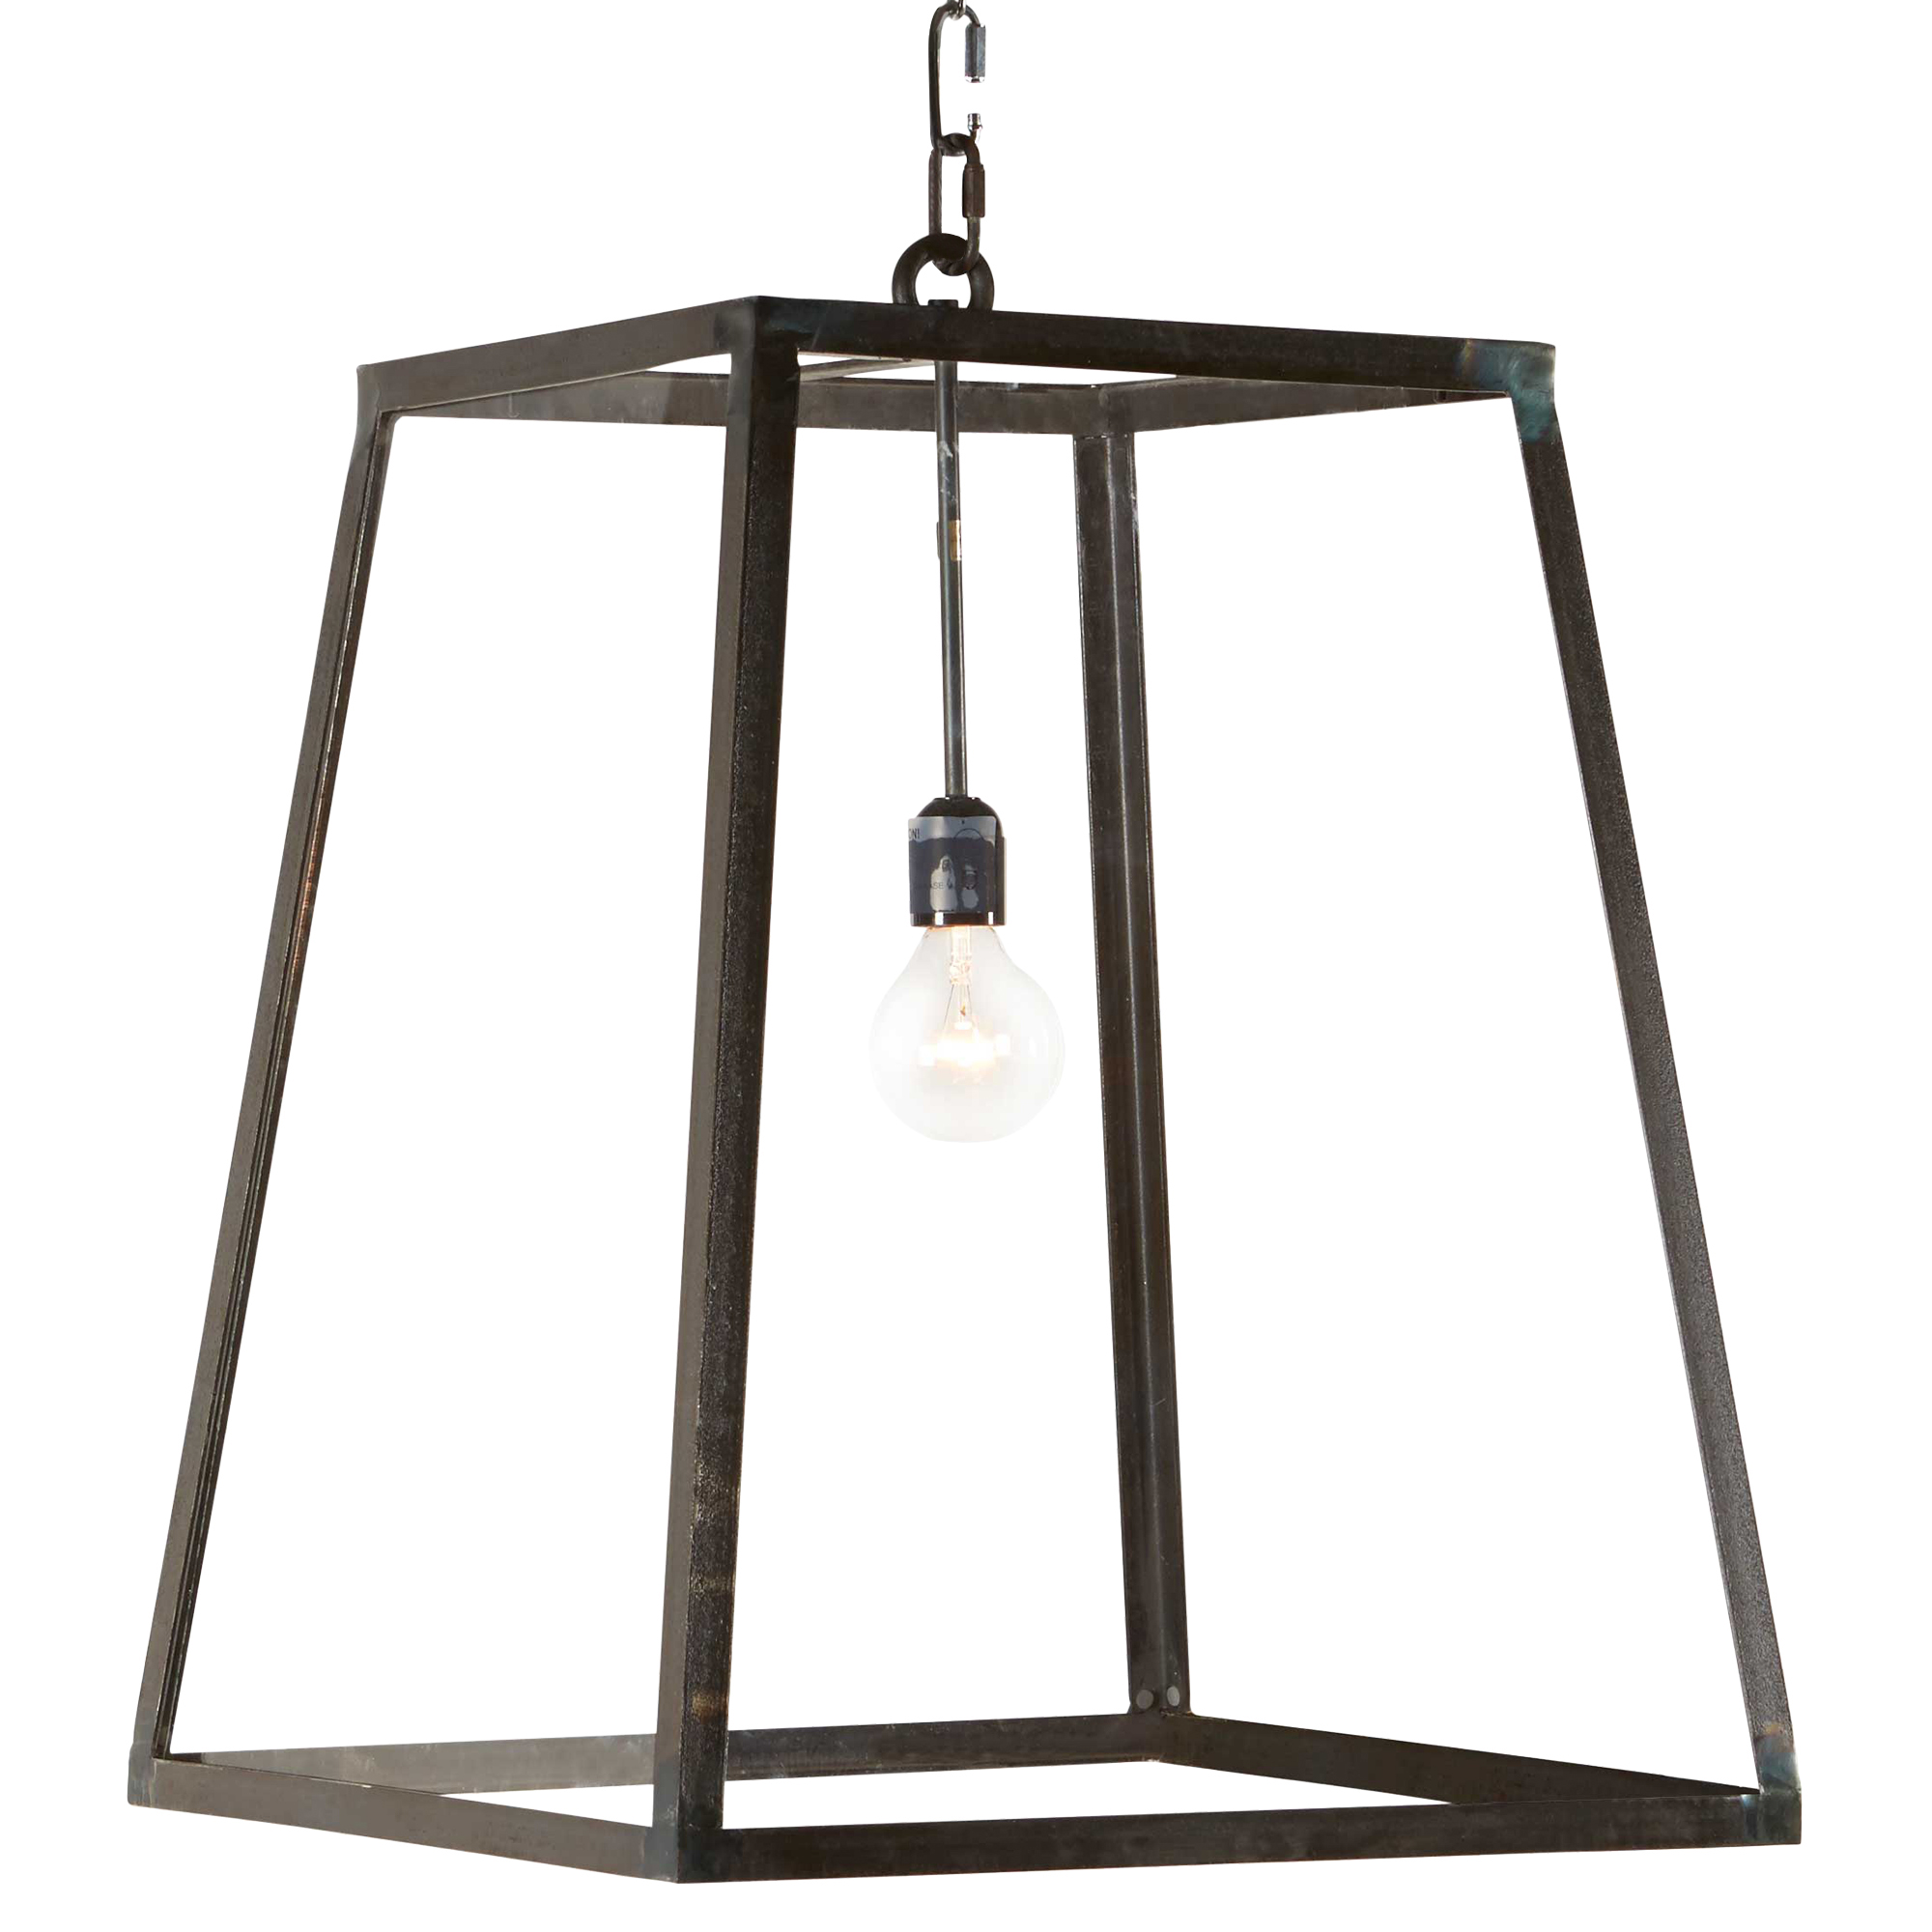 pendant hanging fixtures lantern zoom of ceiling lights tuscany lighting